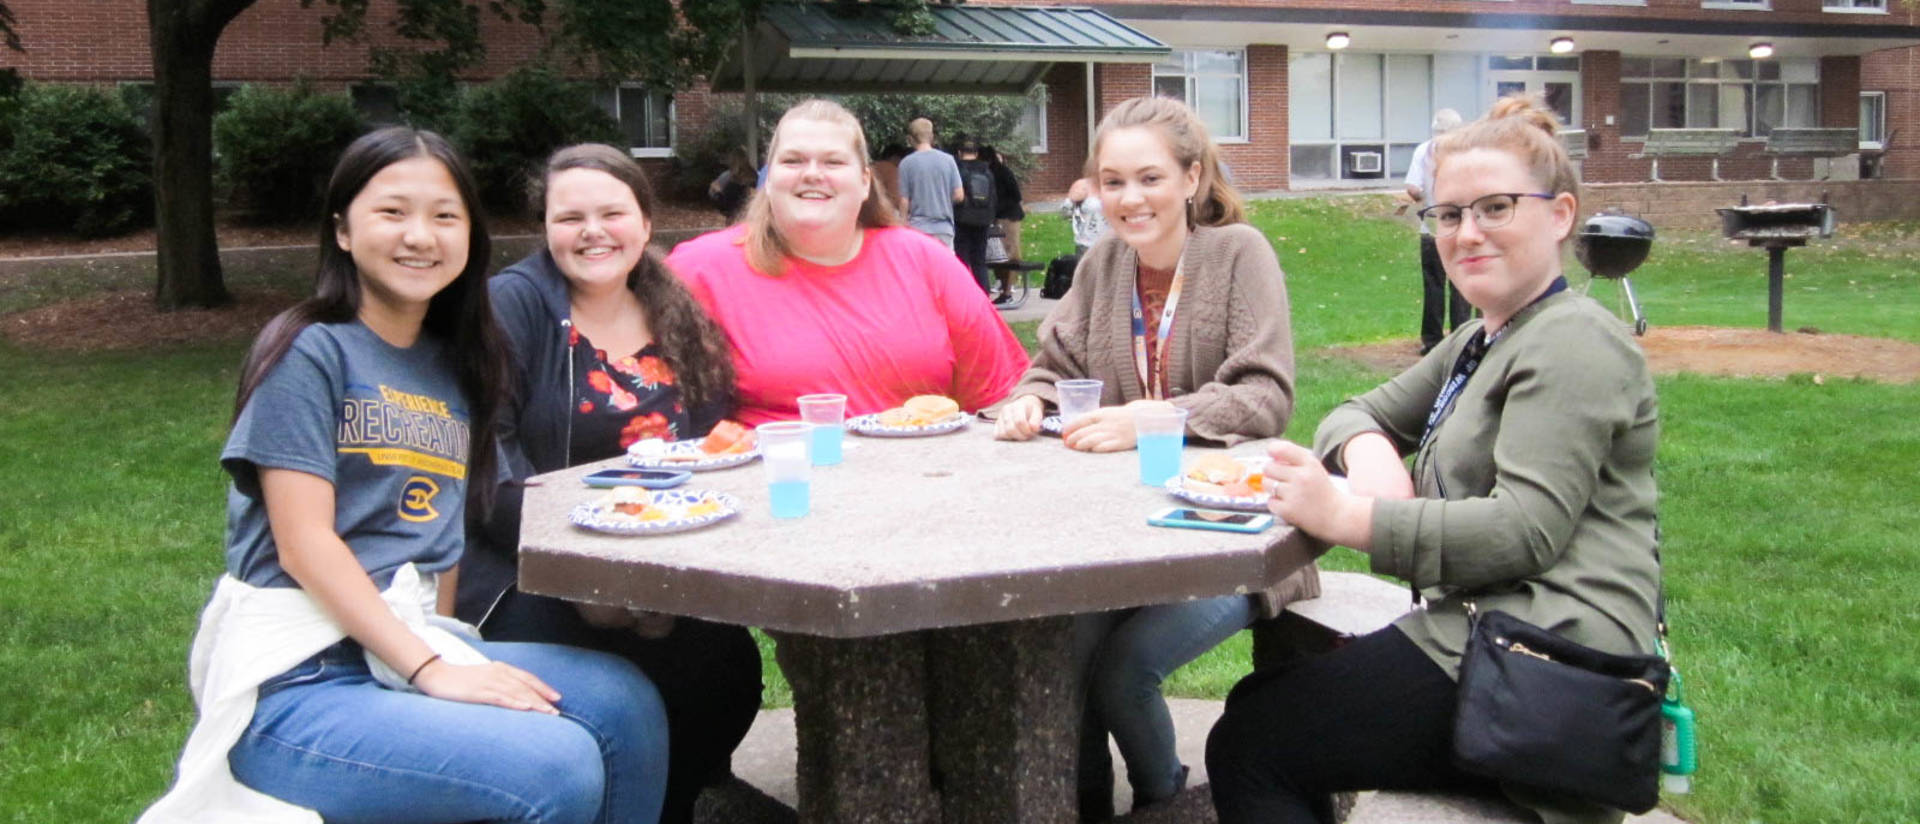 Group of four females smile at a picnic table